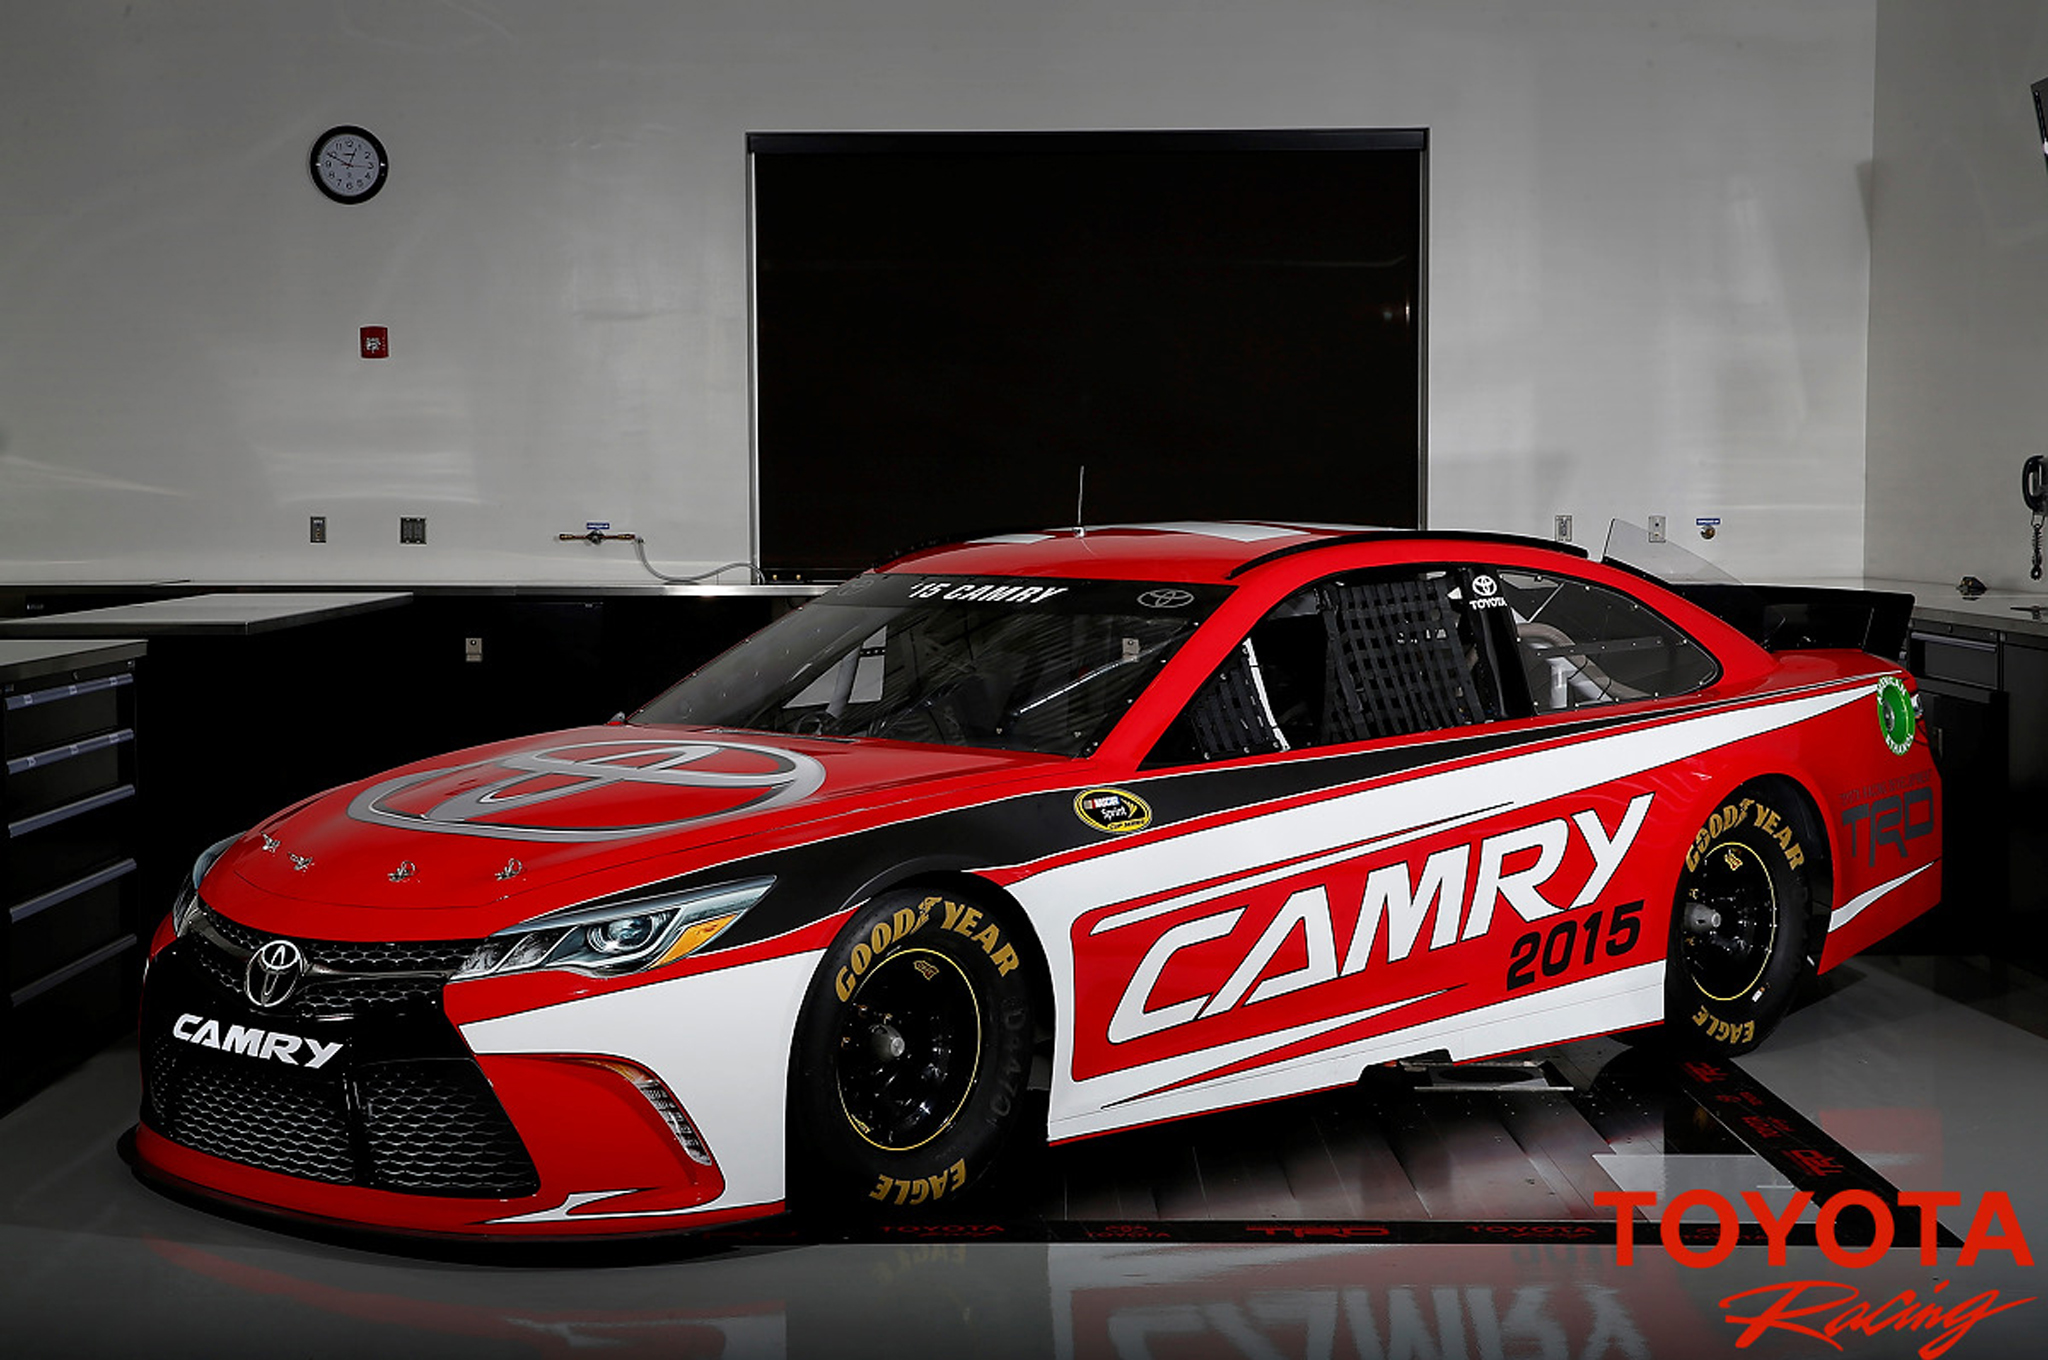 2015 Toyota Camry NASCAR Revealed with Road Car Looks Motor Trend